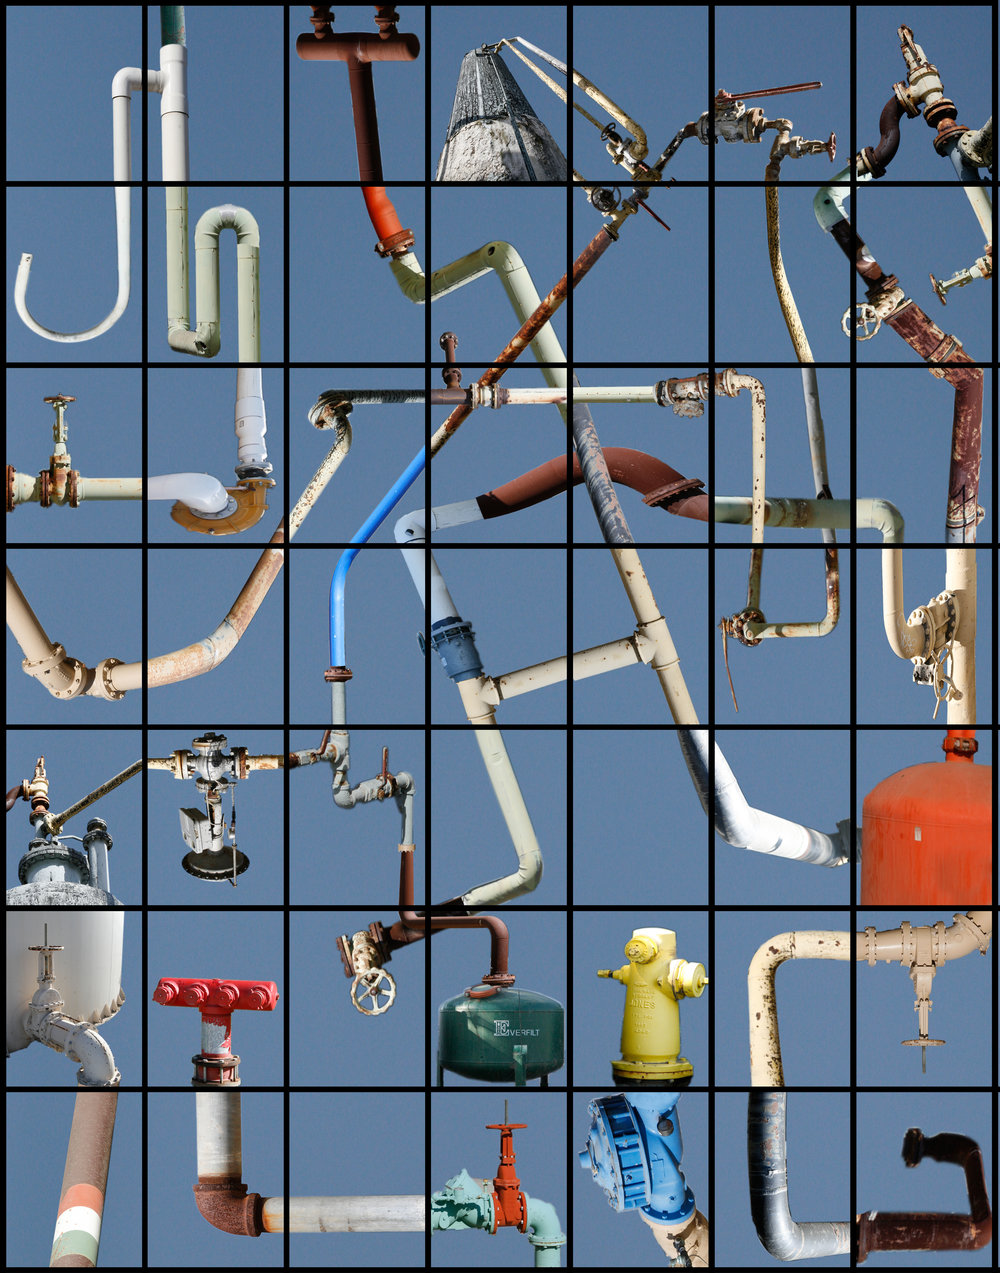 JGross Pipe Grid 11x14 Ver02 copy.jpg